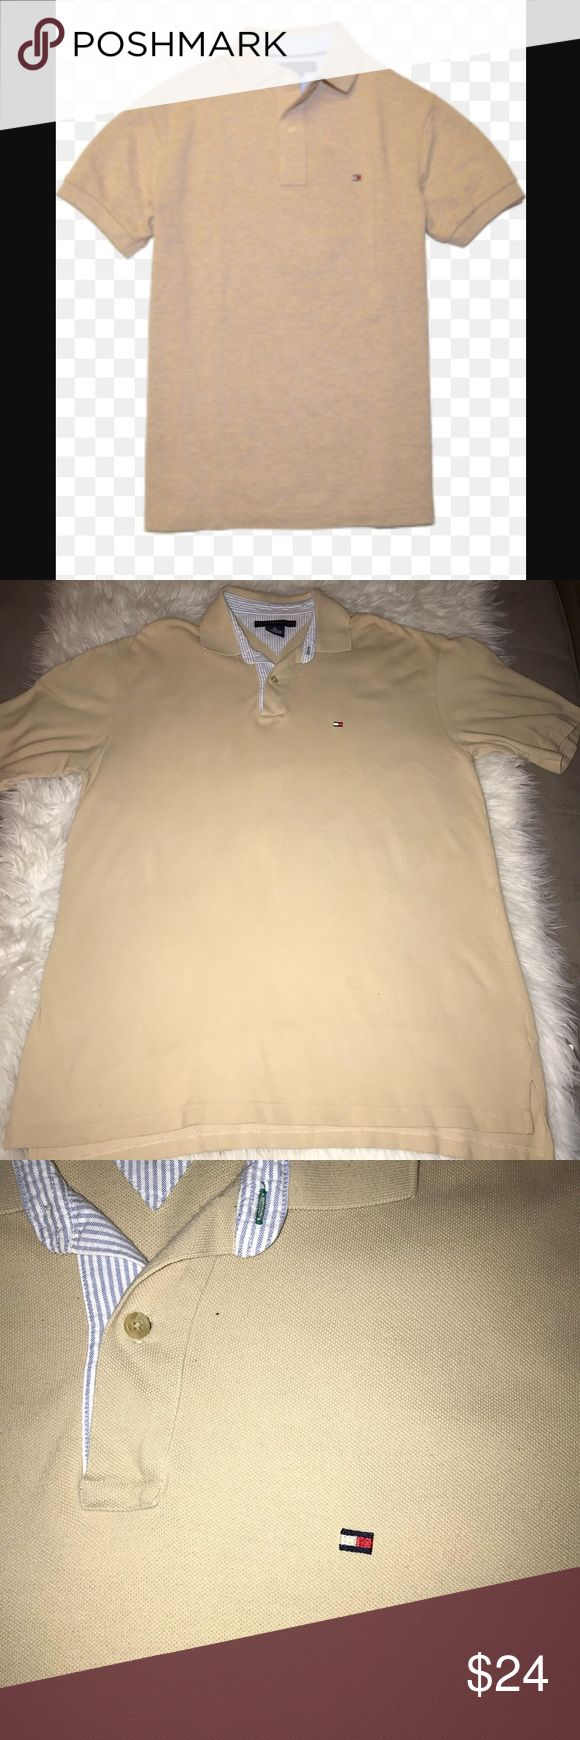 Tommy Hilfiger Beige Classic Polo Shirt Classically stylish. Neutral tan/beige shade with light blue and white interior striped accents. Excellent quality and condition. Check out my other listings to bundle and save! Tommy Hilfiger Shirts Polos